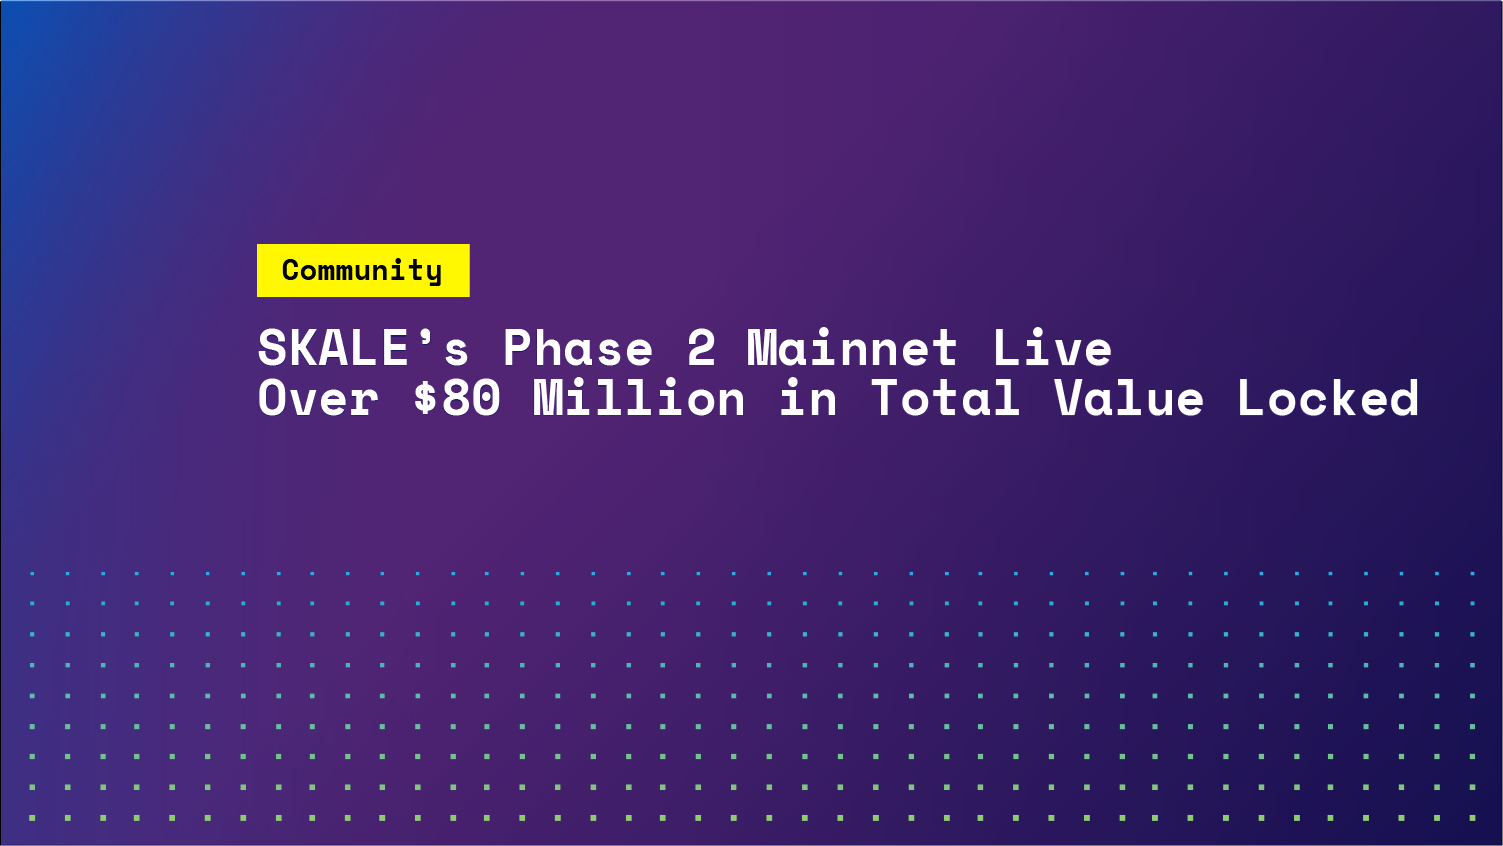 SKALE's Phase 2 Decentralized Mainnet Goes Live with Over $80 Million USD in Total Value Locked